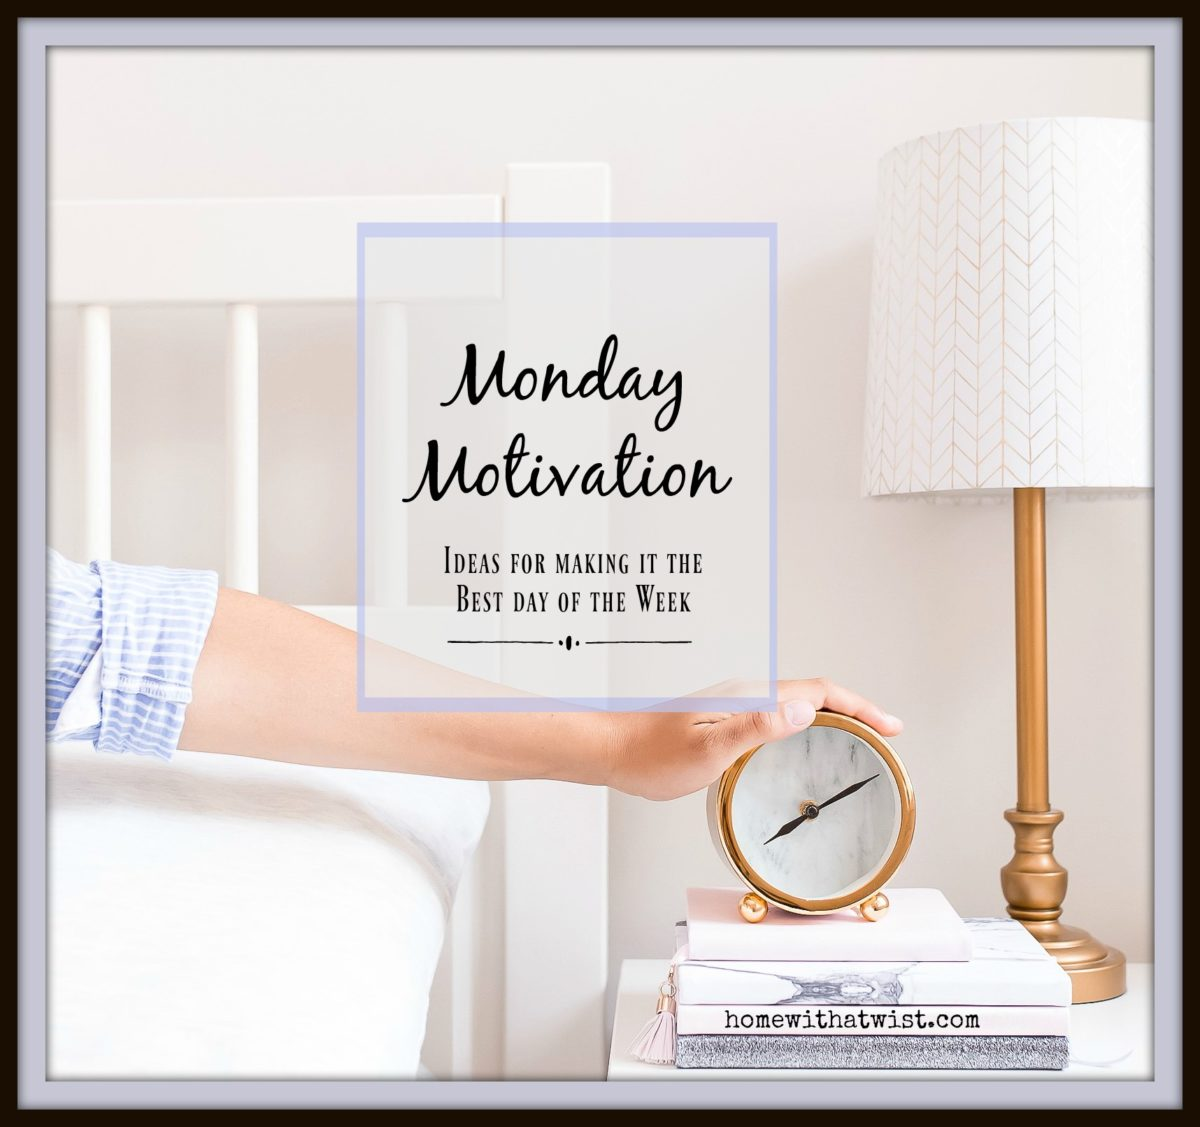 Monday Motivation:  Eleven Things to do on Sunday and Shipt Coupon Code